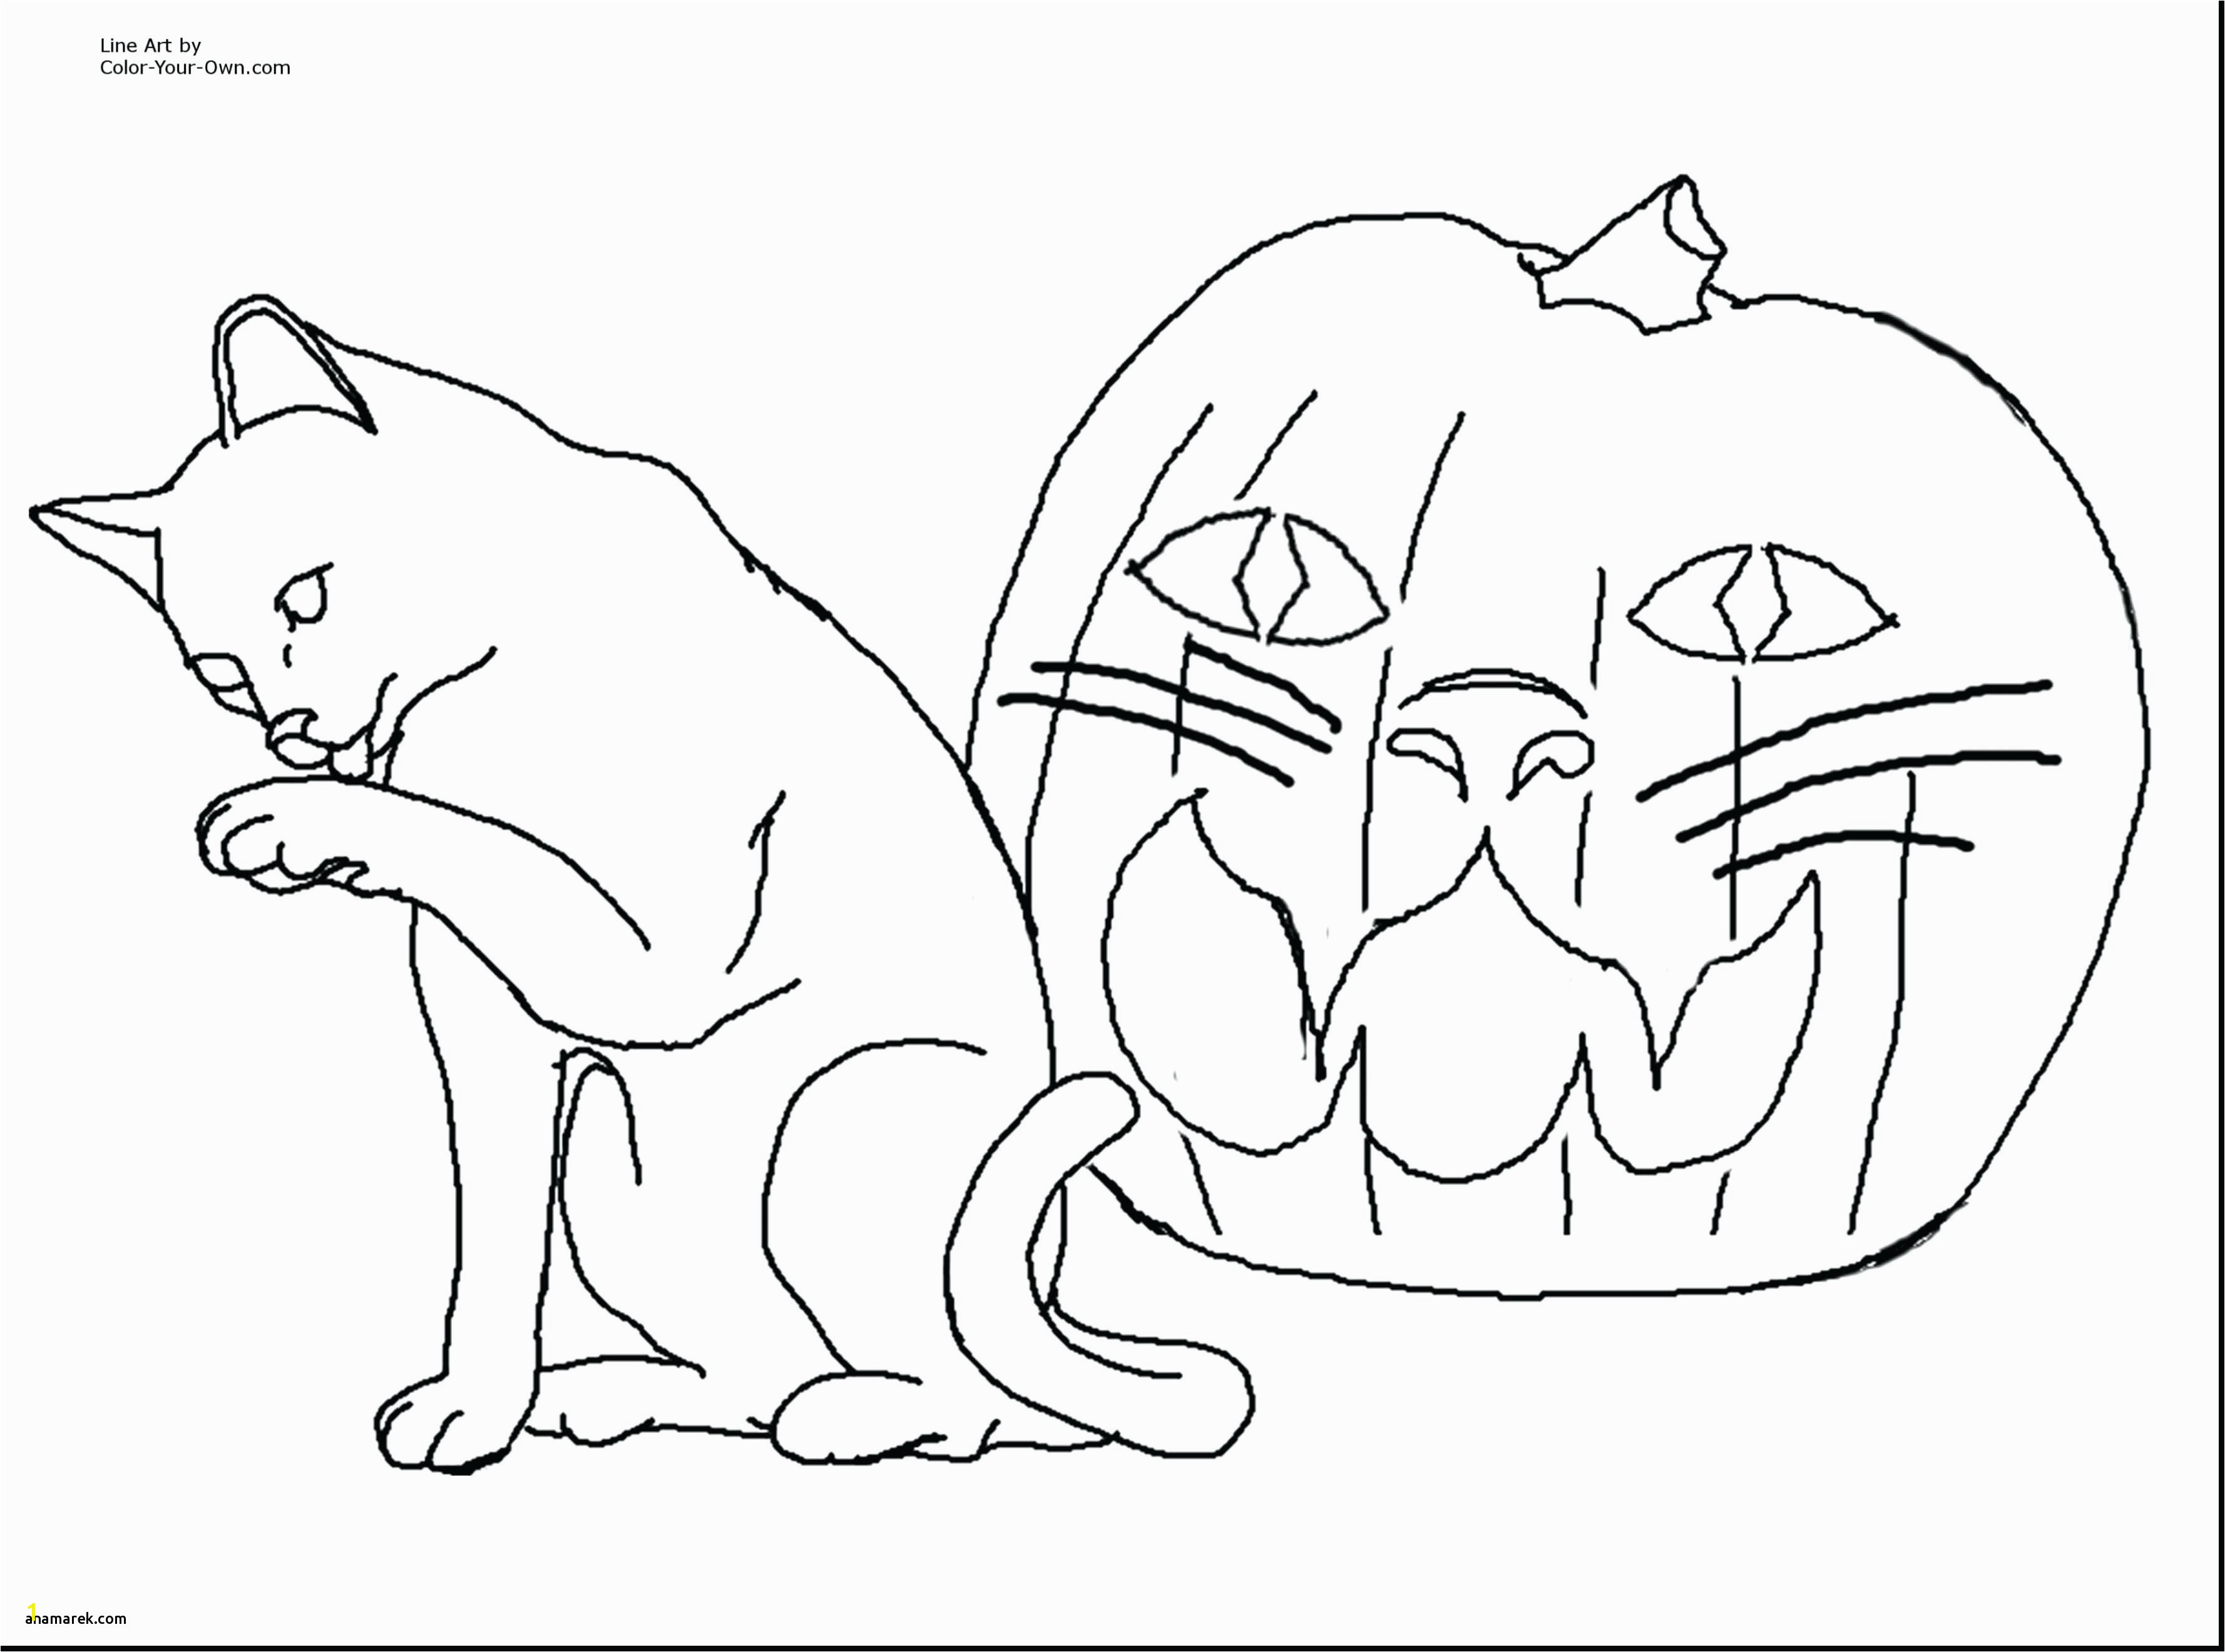 Cat Coloring Pages Cat Coloring Pages Free Printable Elegant Cat Coloring Pages Free Printable Awesome